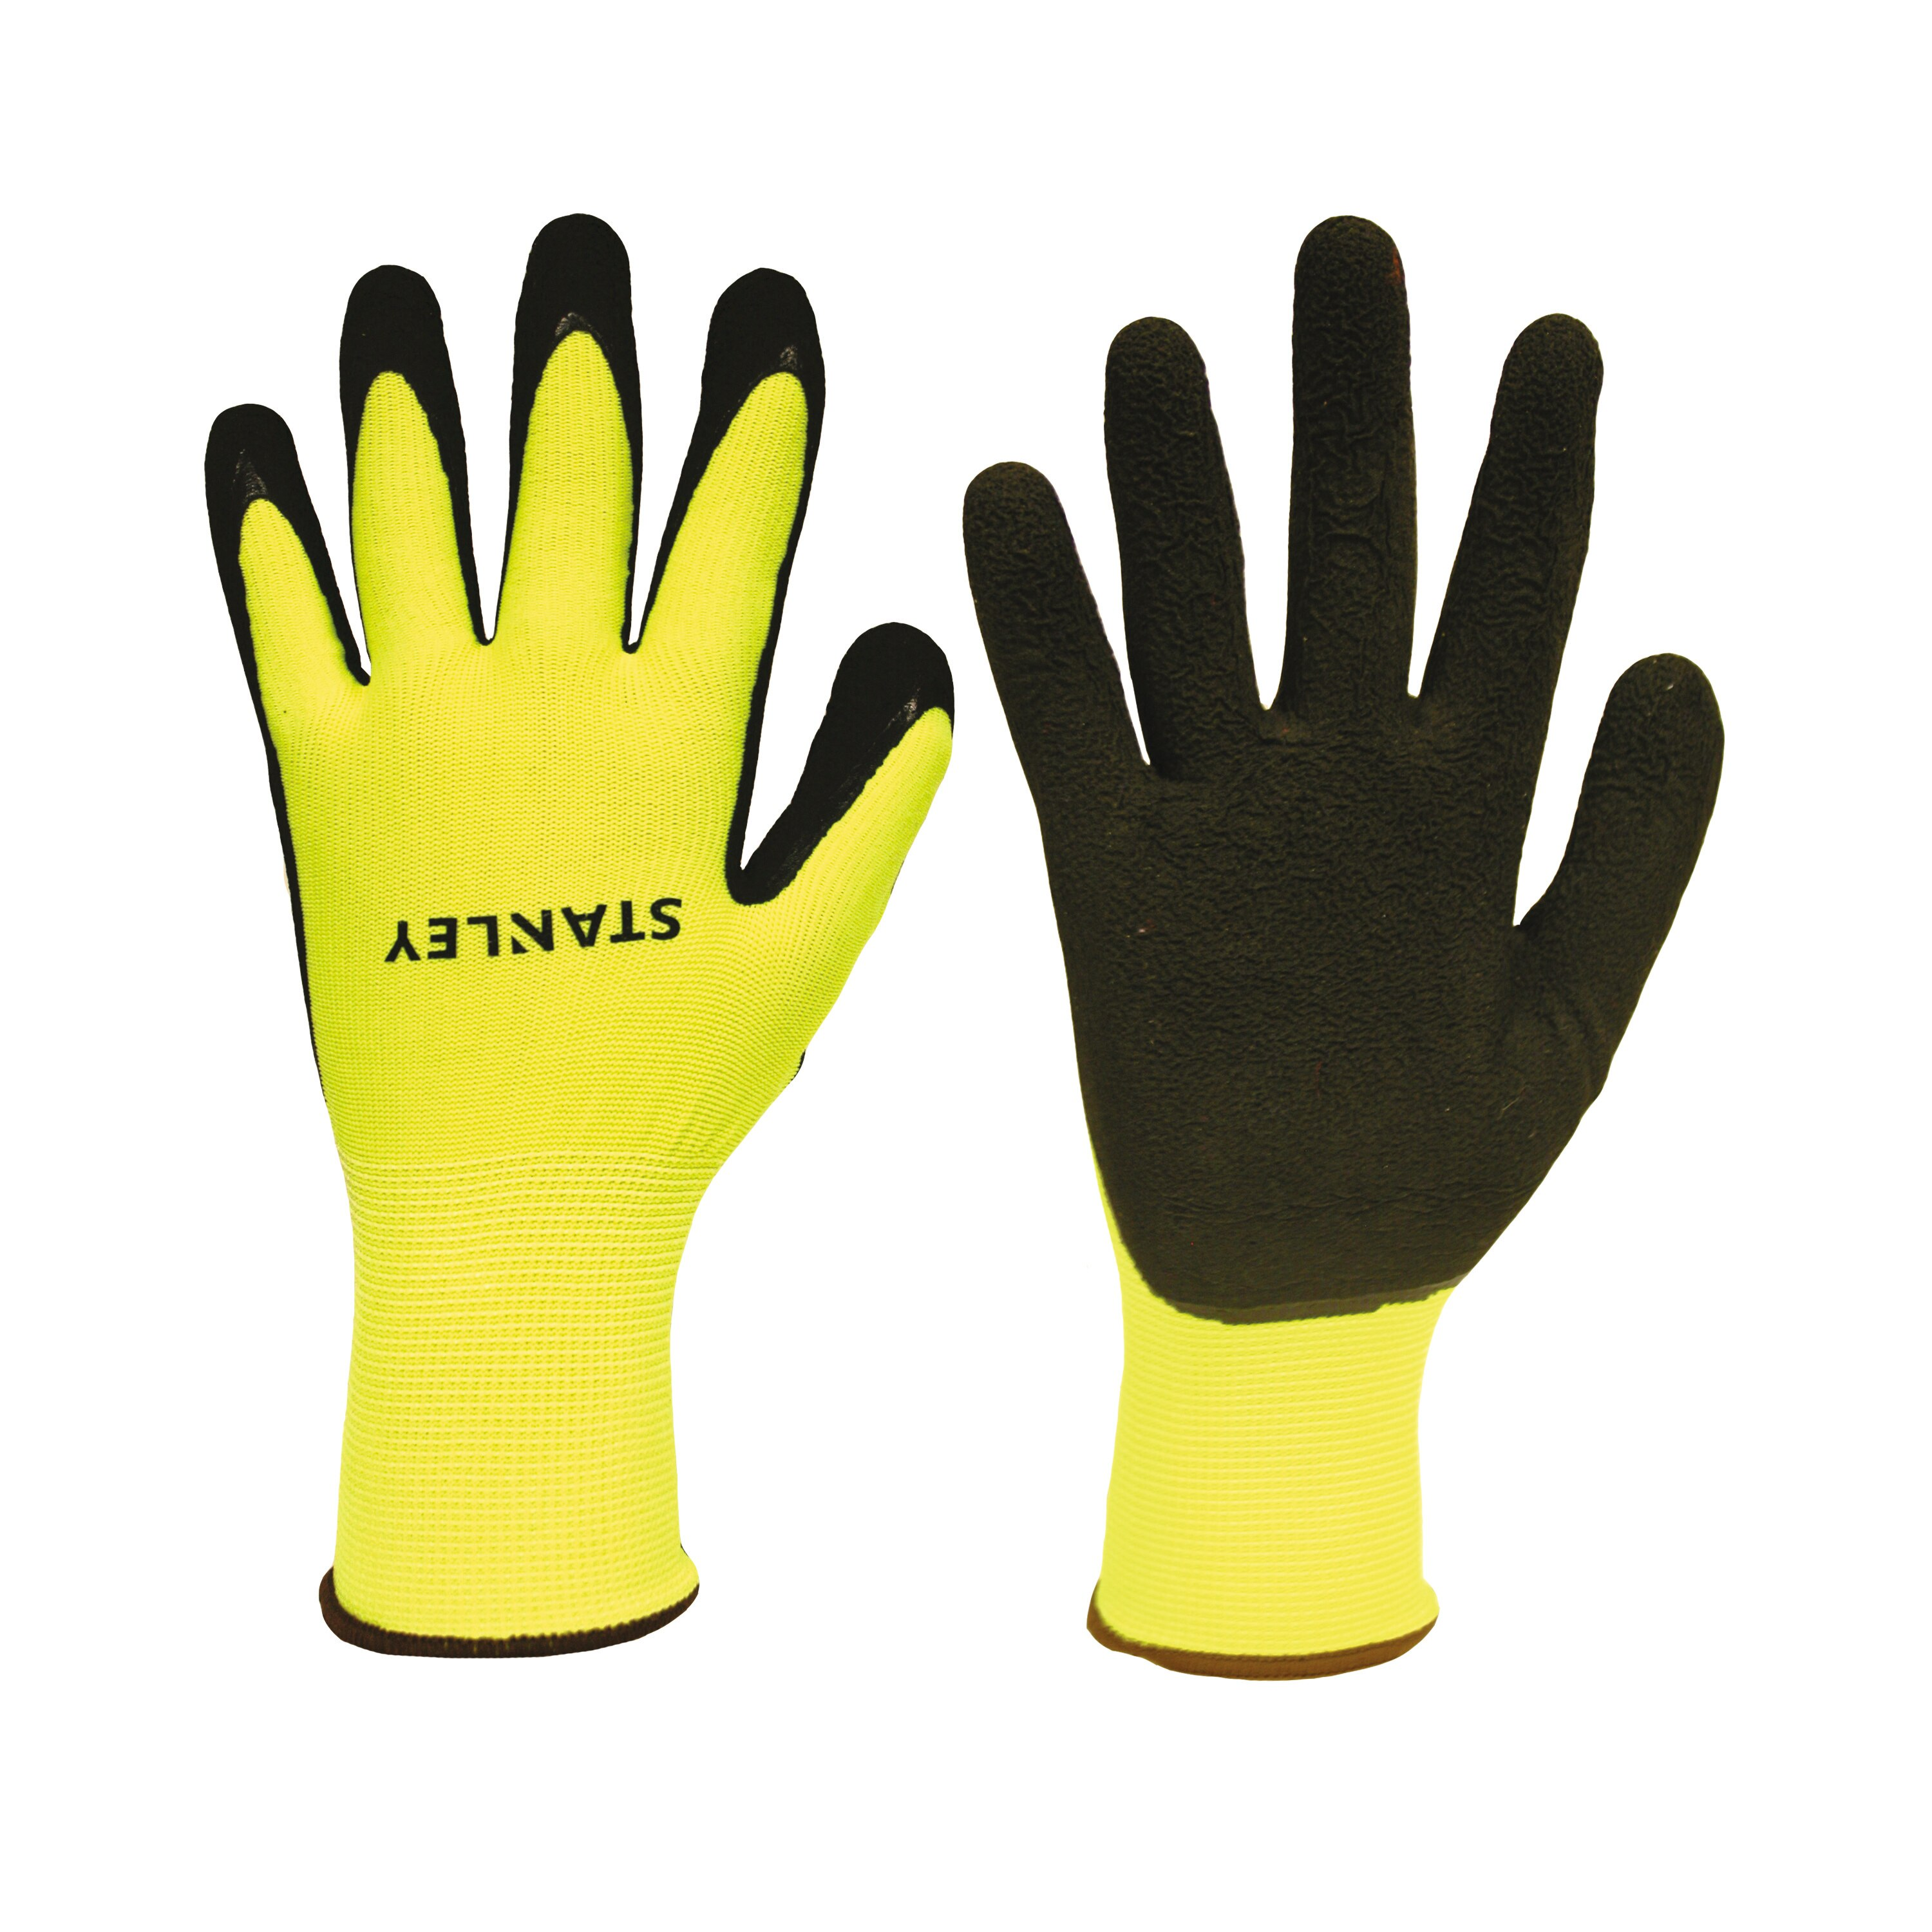 Stanley Tools - HiVis Foam LatexCoated Gloves - S38771